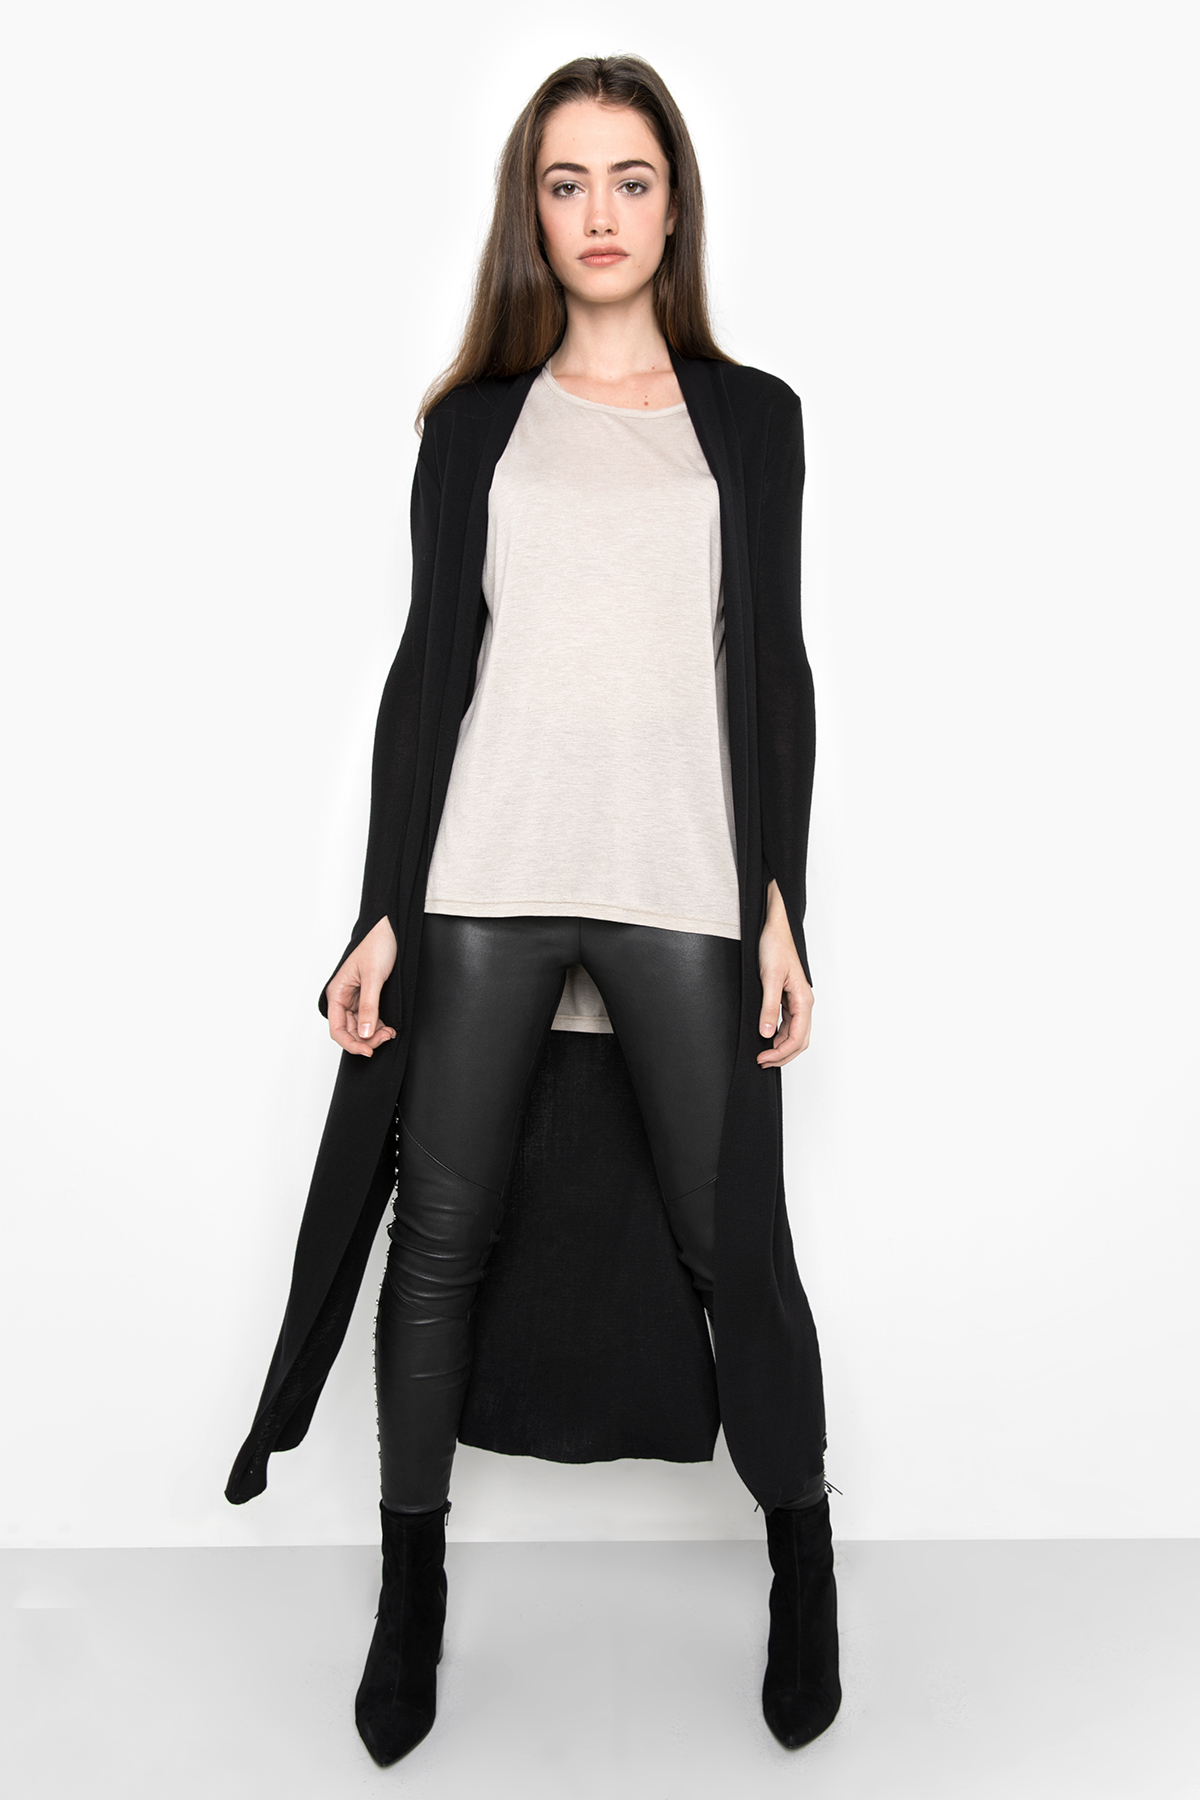 Cardigan Jess black Tigha Clearance Get To Buy Buy Cheap Original Best Price bs0j76